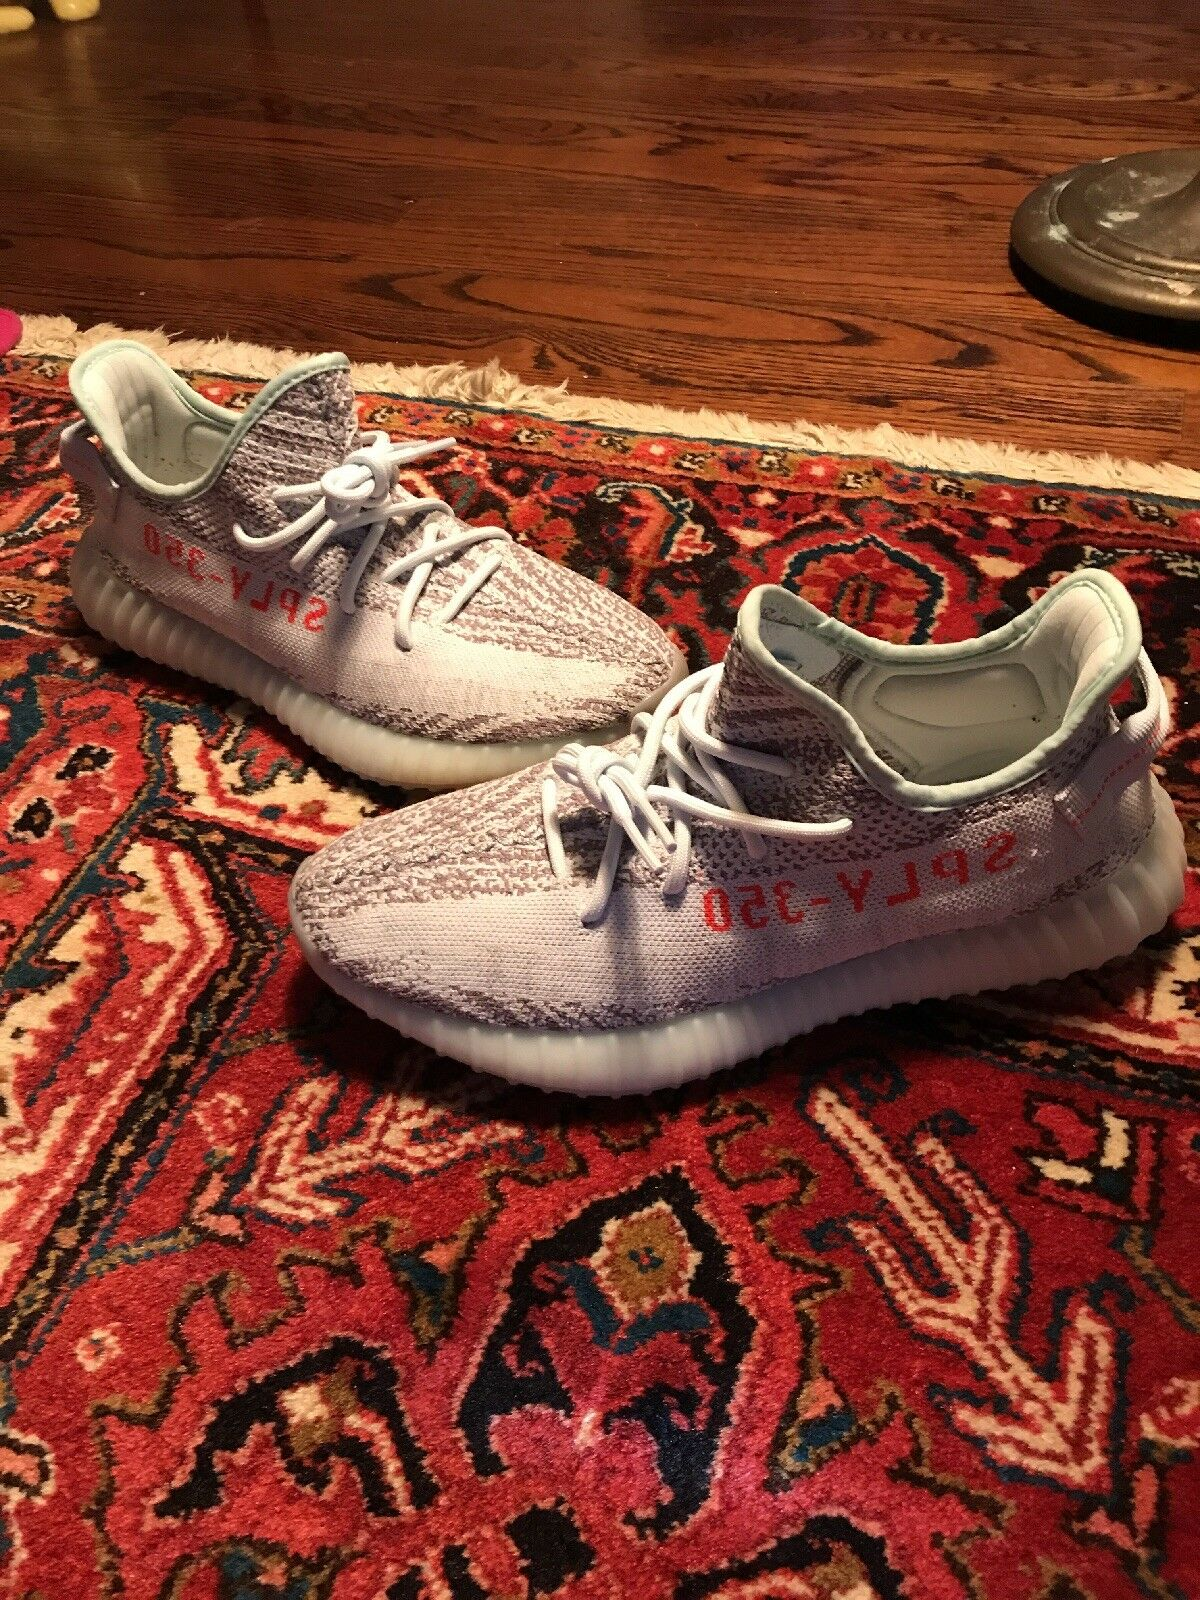 Adidas Yeezy Boost 350 V2 bluee Tint Grey Red B37571 SPLY 100% AUTHENTIC SIZE 10